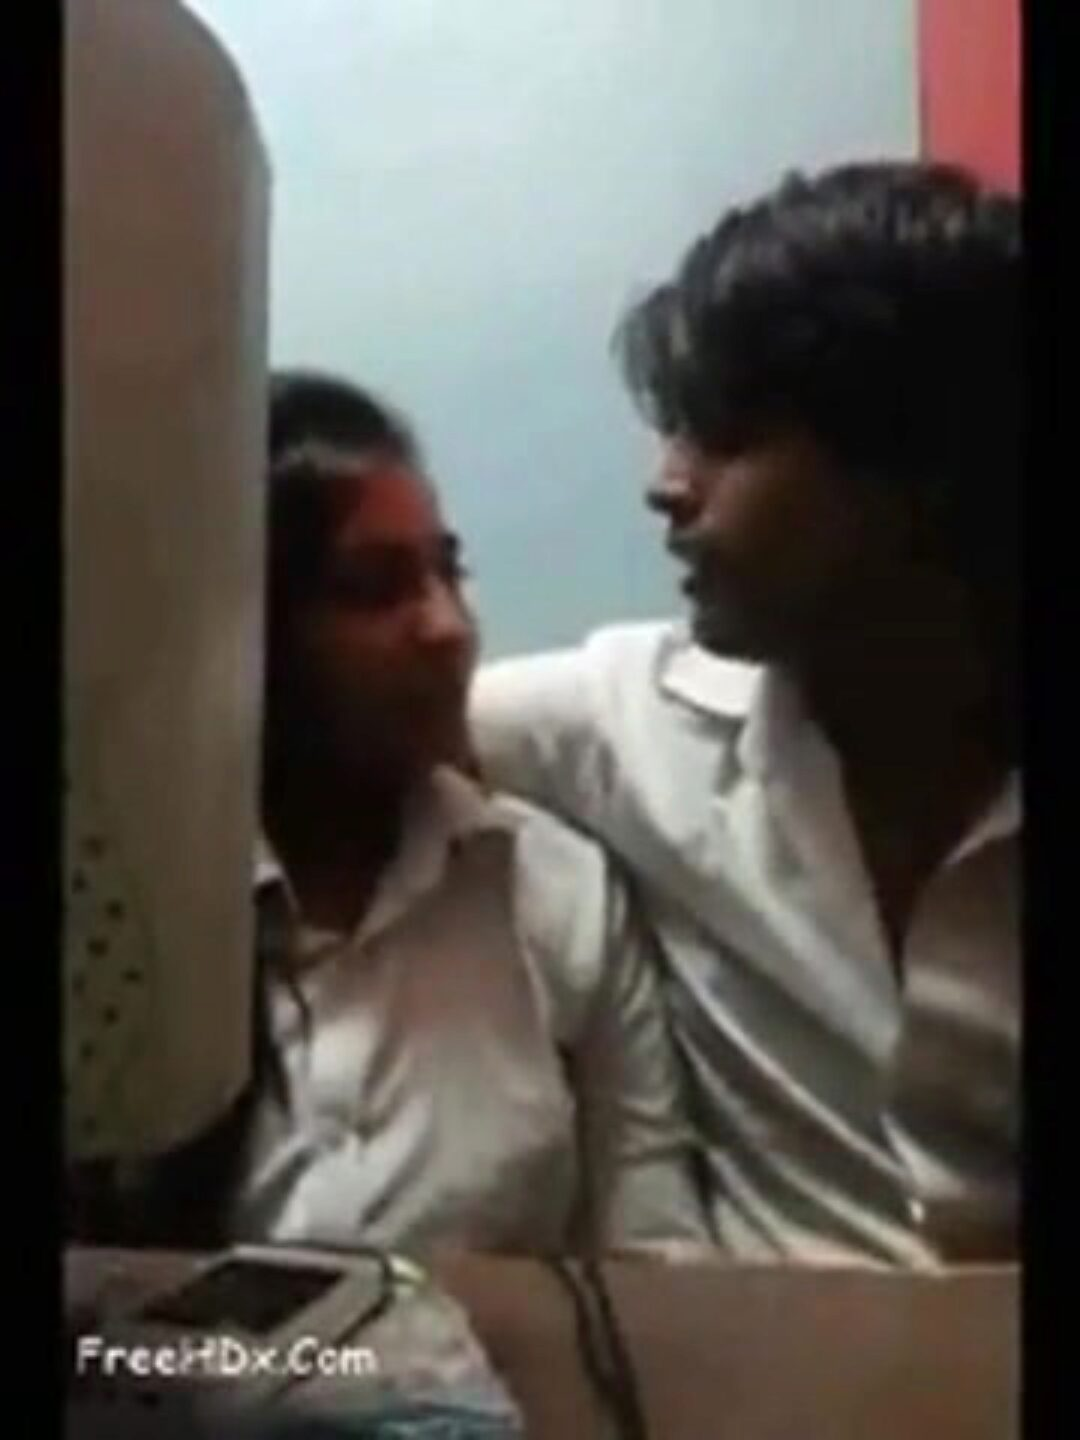 Desi pair romp in cyber cafe Desi couple scones pressing and frigging in cyber cafe